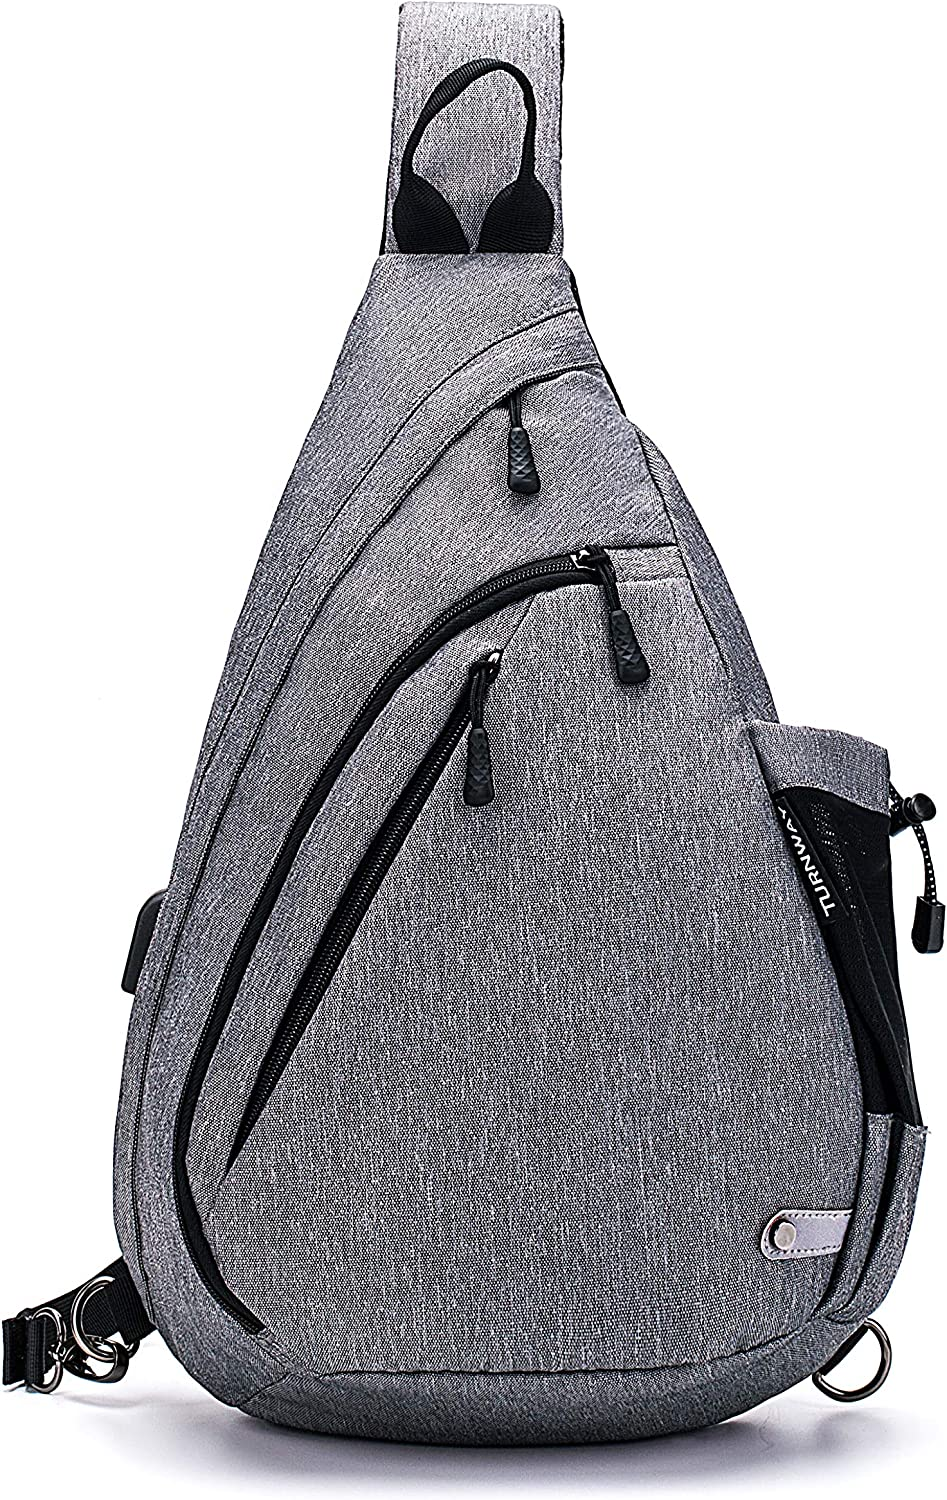 TurnWay Water-Proof Sling Backpack Topics on TV Bag Crossbody Shoulder Low price fo